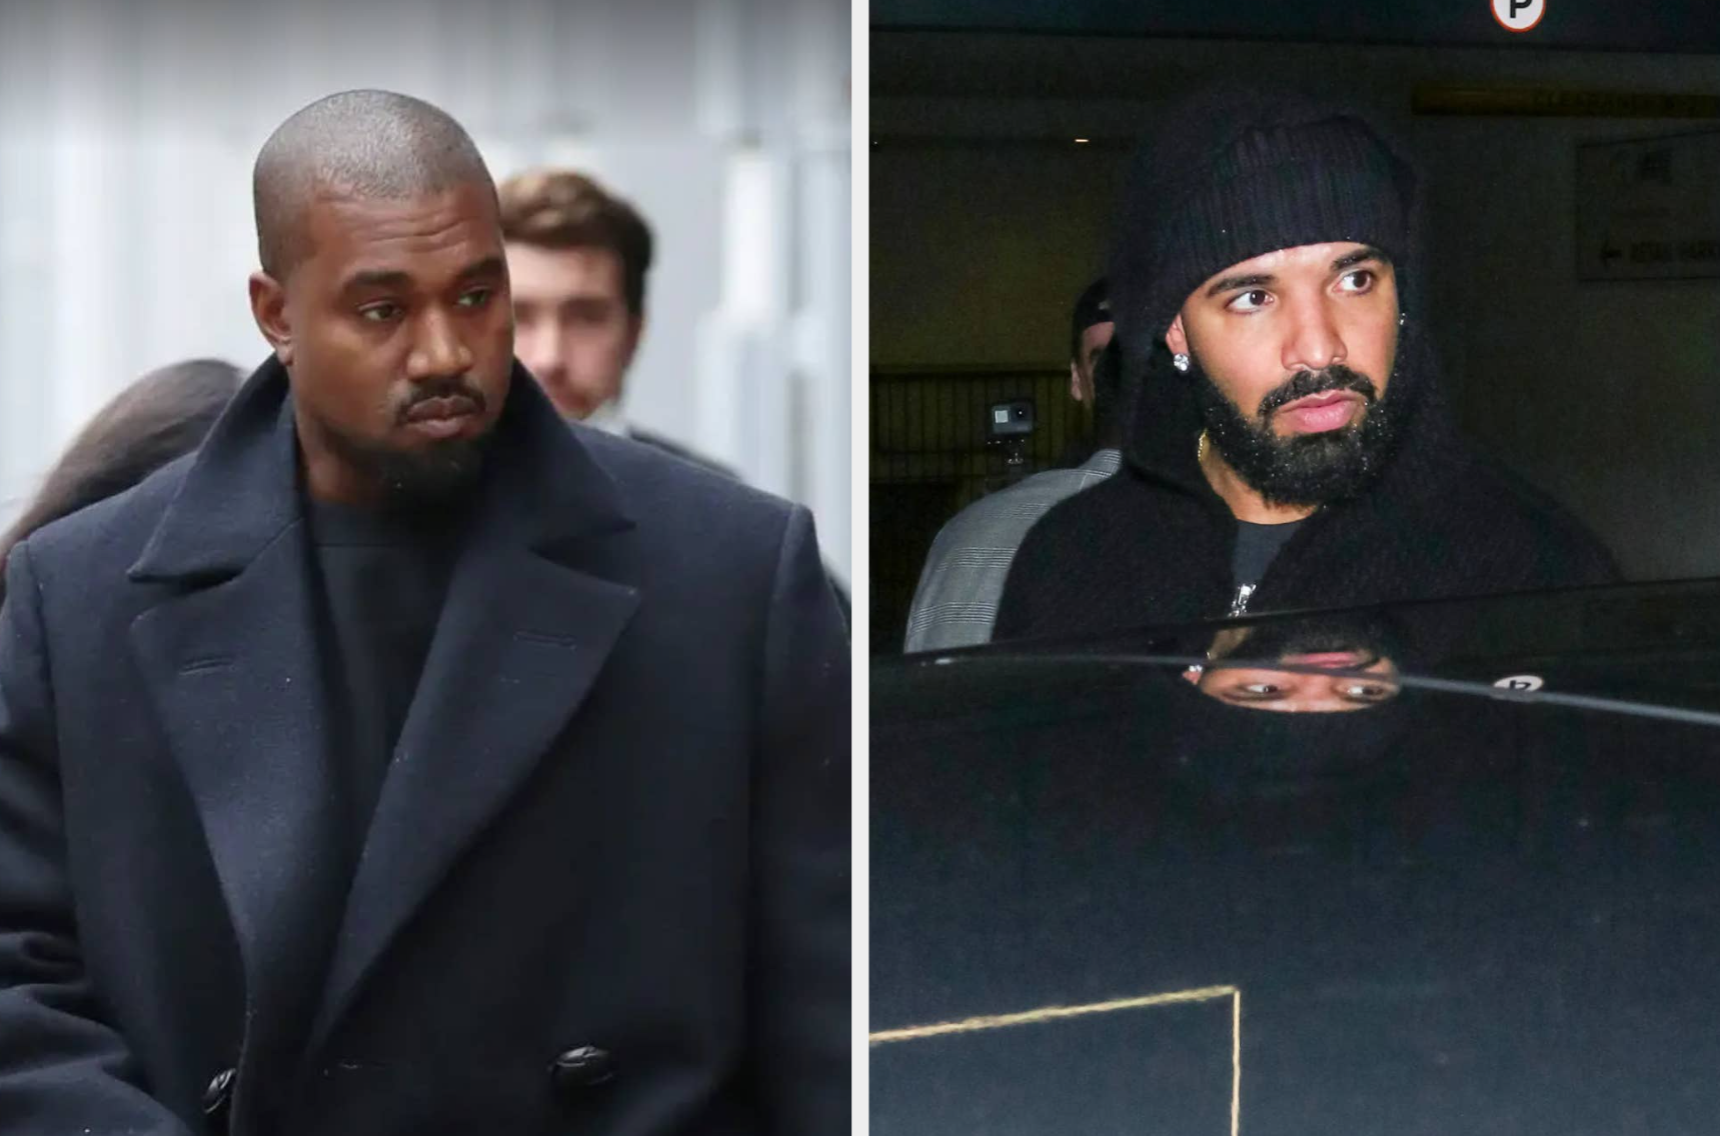 Photo of Kanye West walking outside in a black peacoat next to a photo ofDrake looking over the top of a car wearing a black coat and beanie